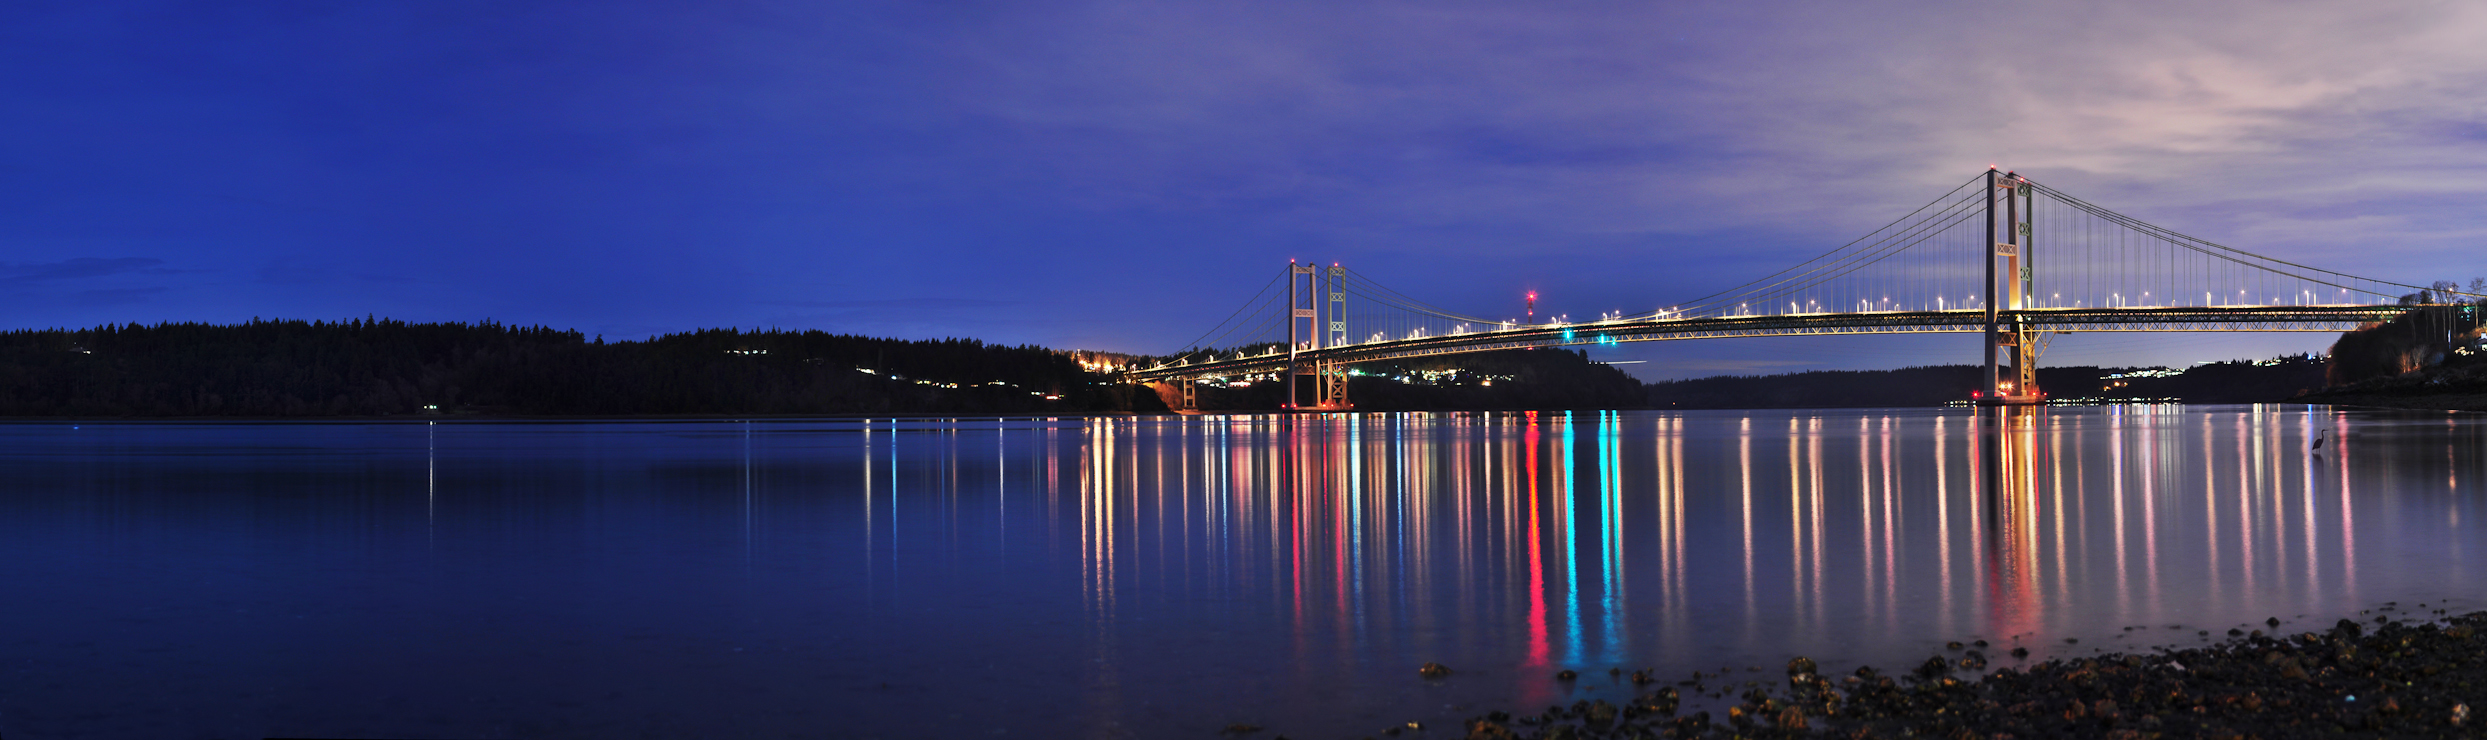 tacoma-narrows-bridge-night-winter